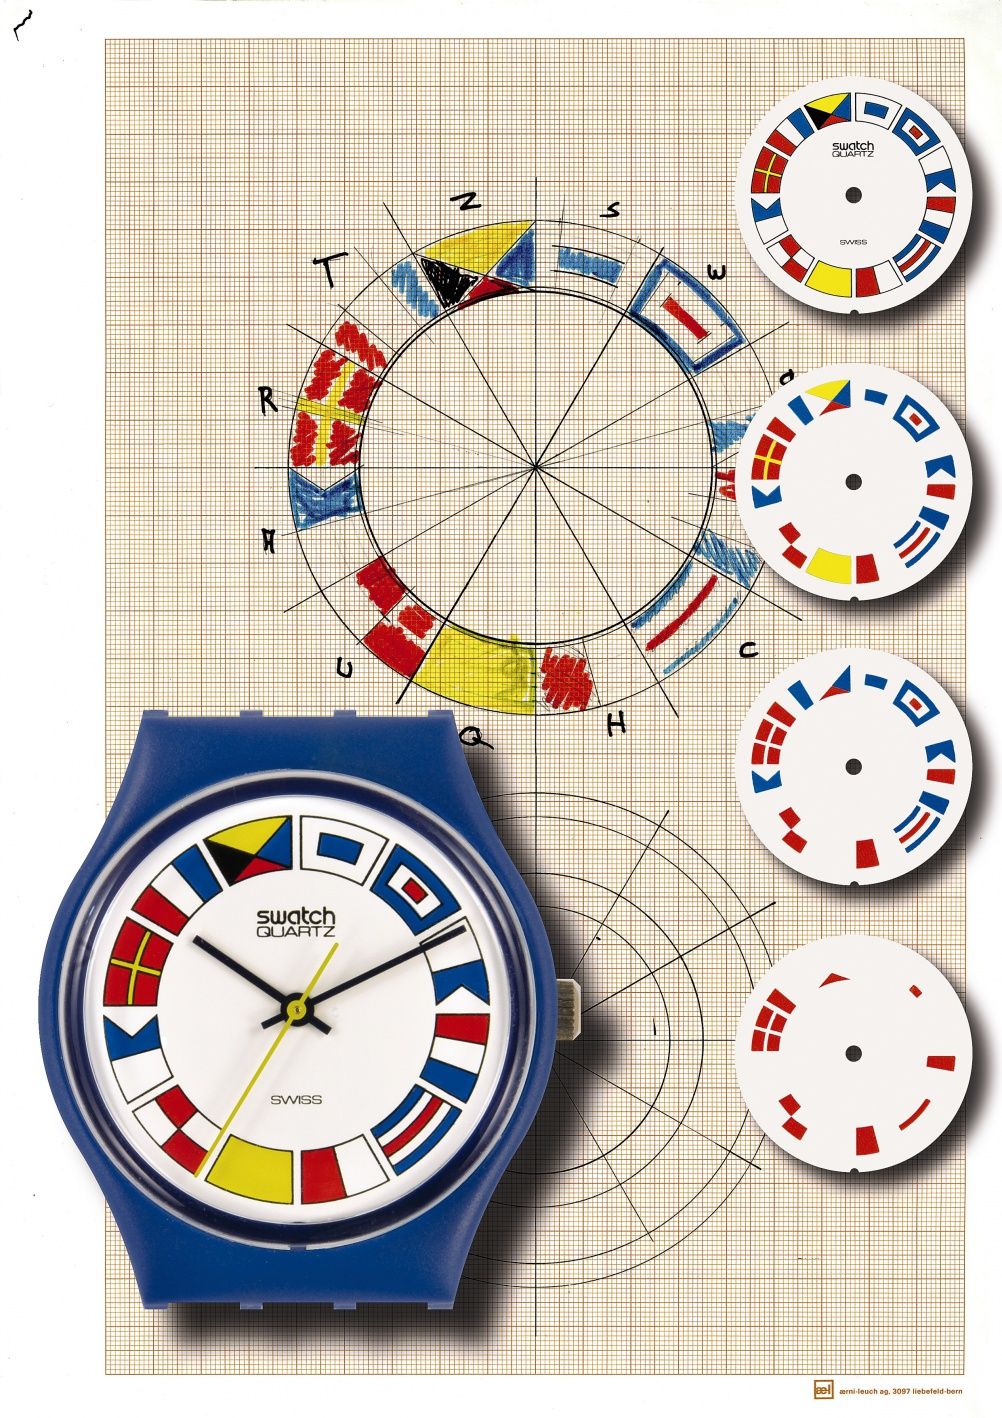 The 12 Flags watch launched in the 1984 Spring/Summer collection and was inspired by nautical flags